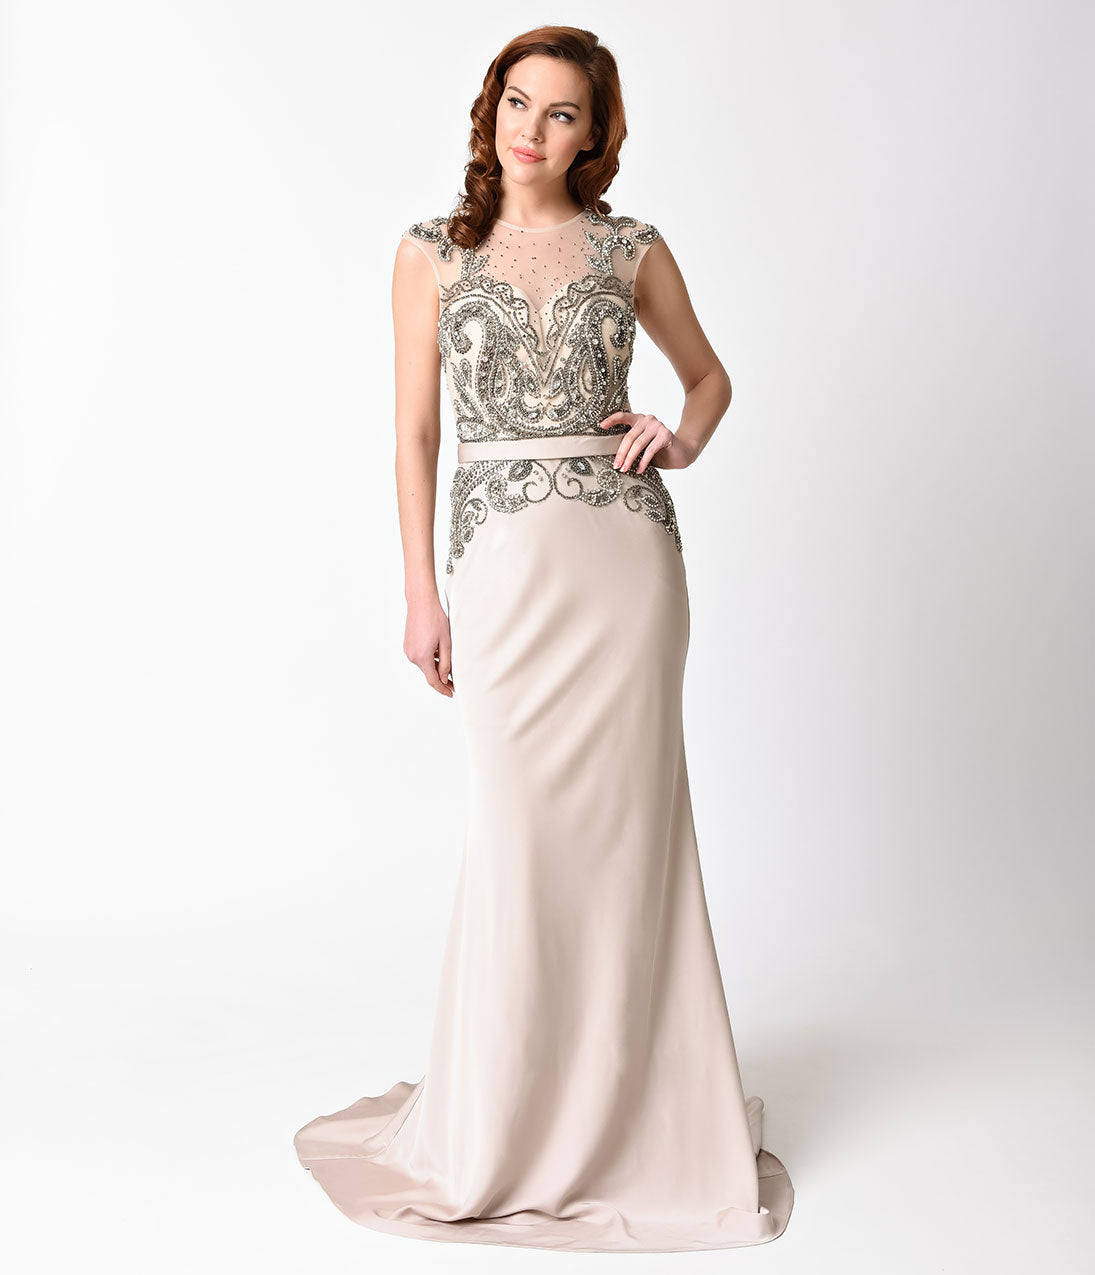 1940s Evening, Prom, Party, Cocktail Dresses & Ball Gowns Champagne Embellished Sheer Illusion Long Dress $301.00 AT vintagedancer.com